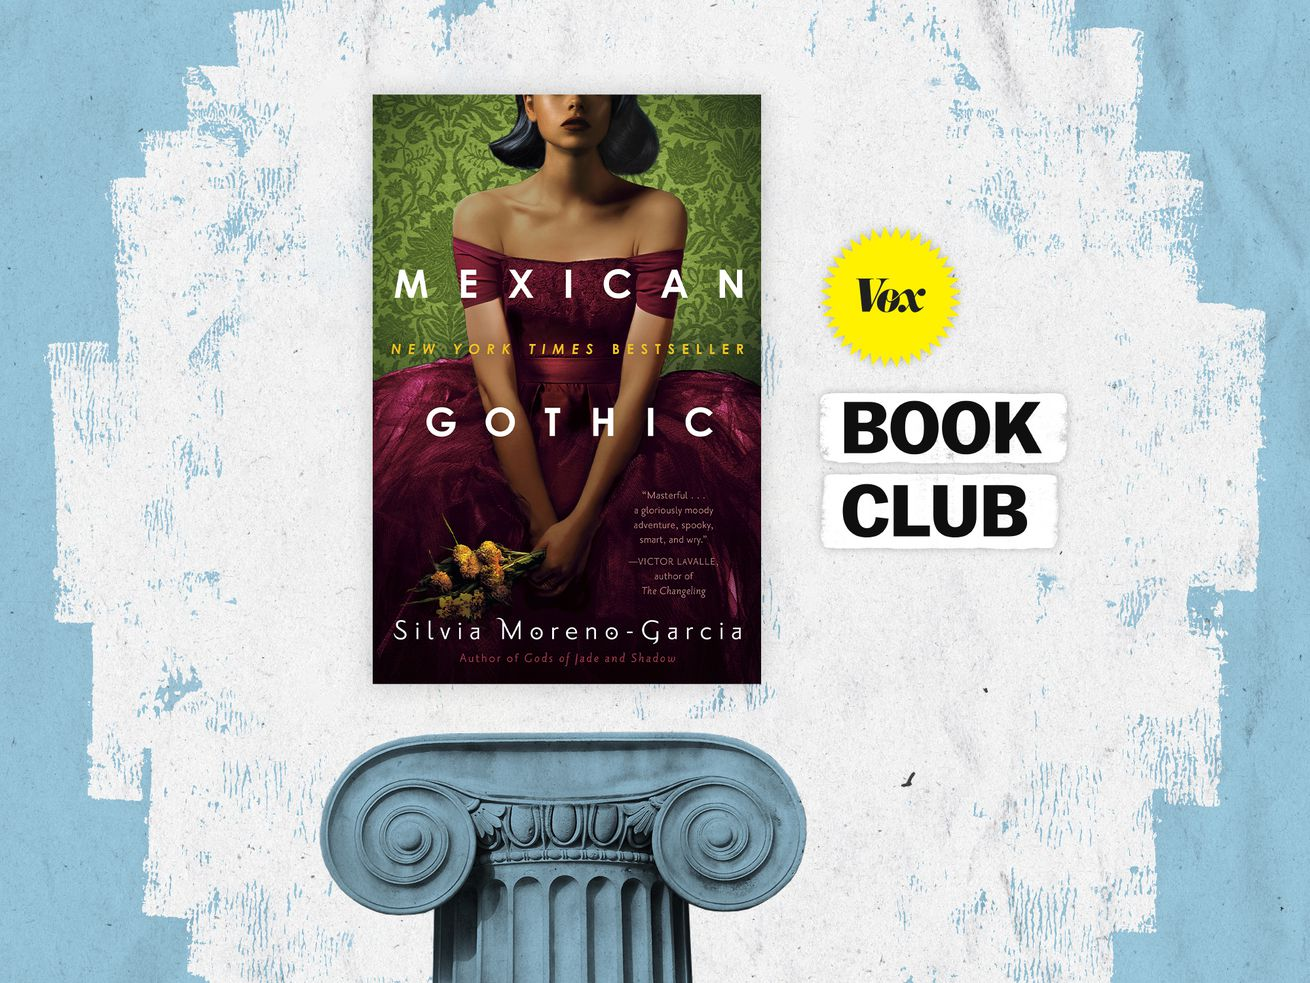 The Vox Book Club reads Mexican Gothic by Silvia Moreno-Garcia.